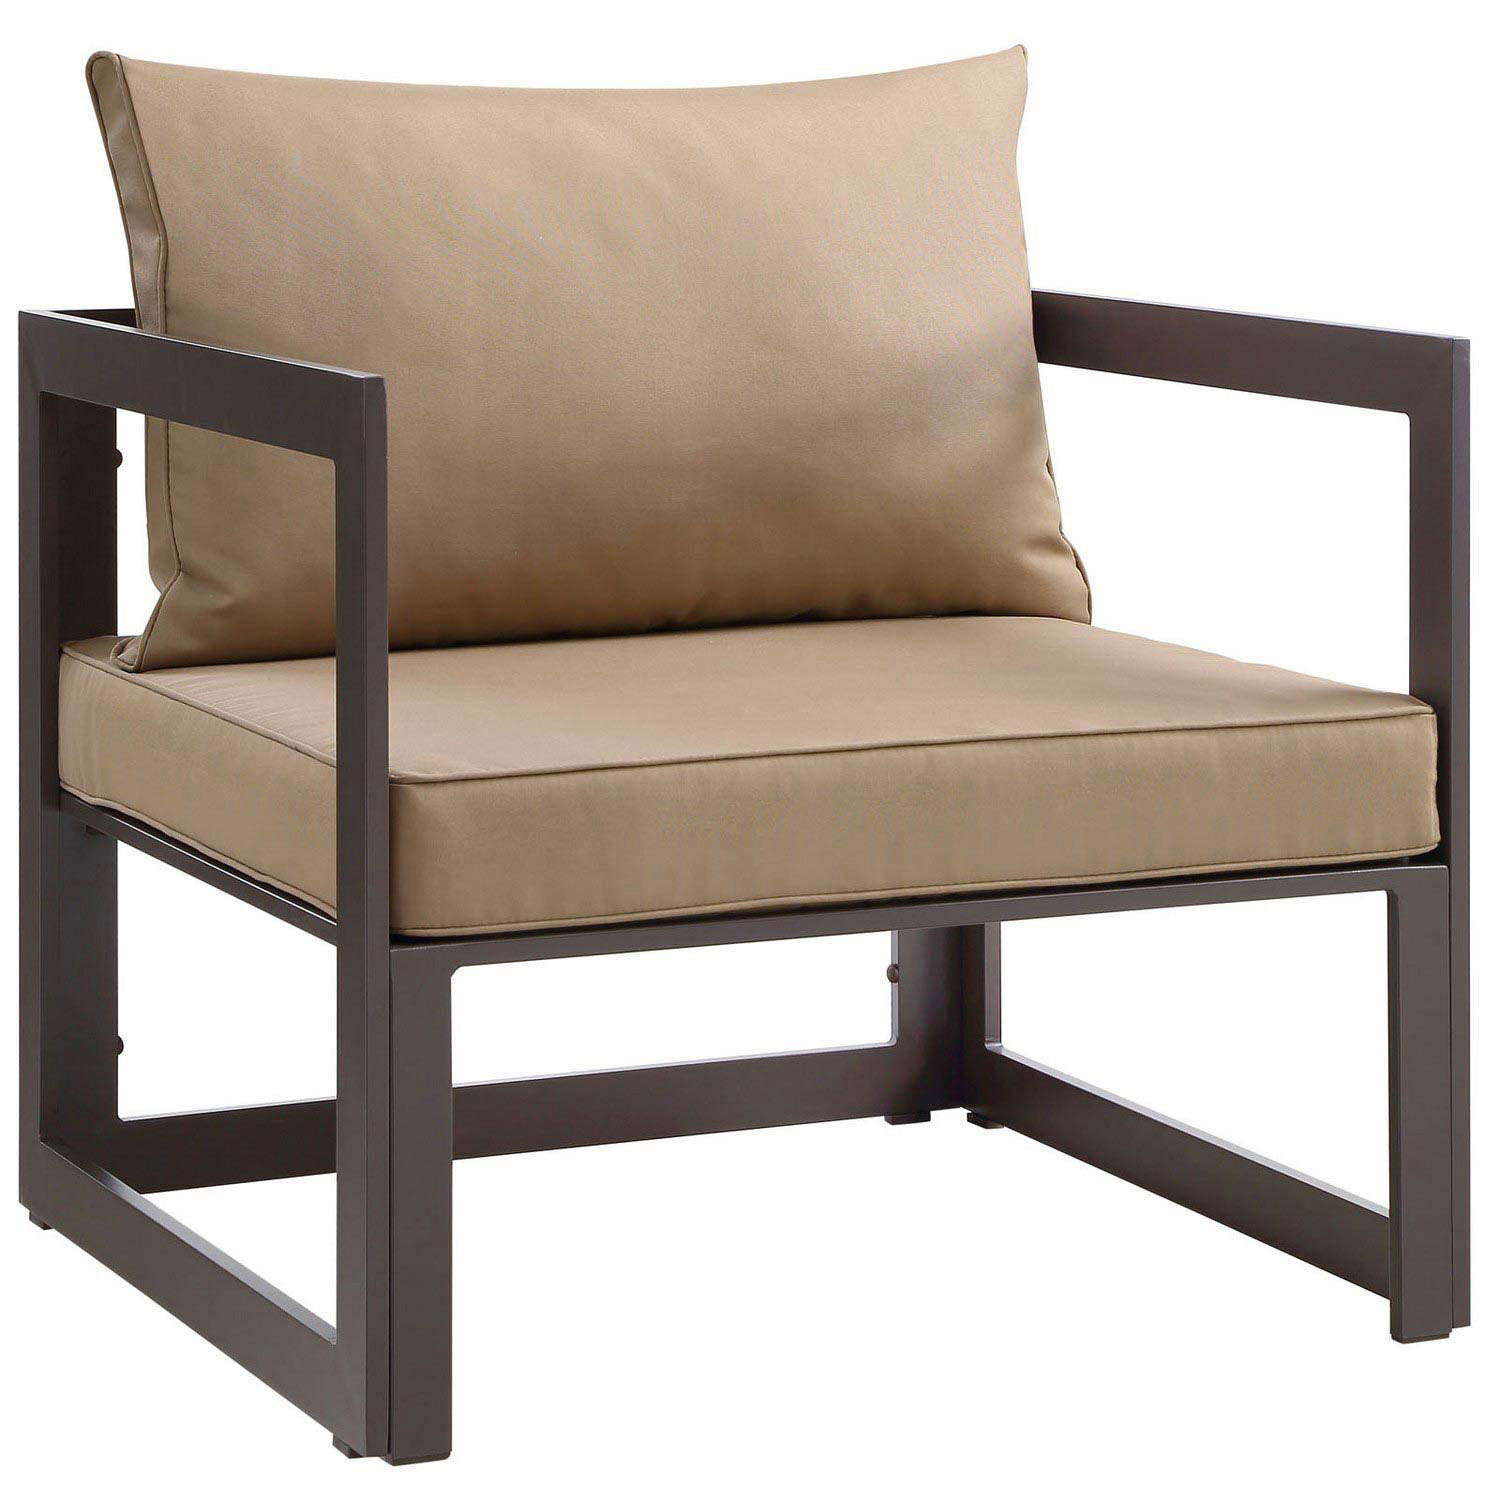 Modway Fortuna Outdoor Patio Armchair - Brown/Mocha